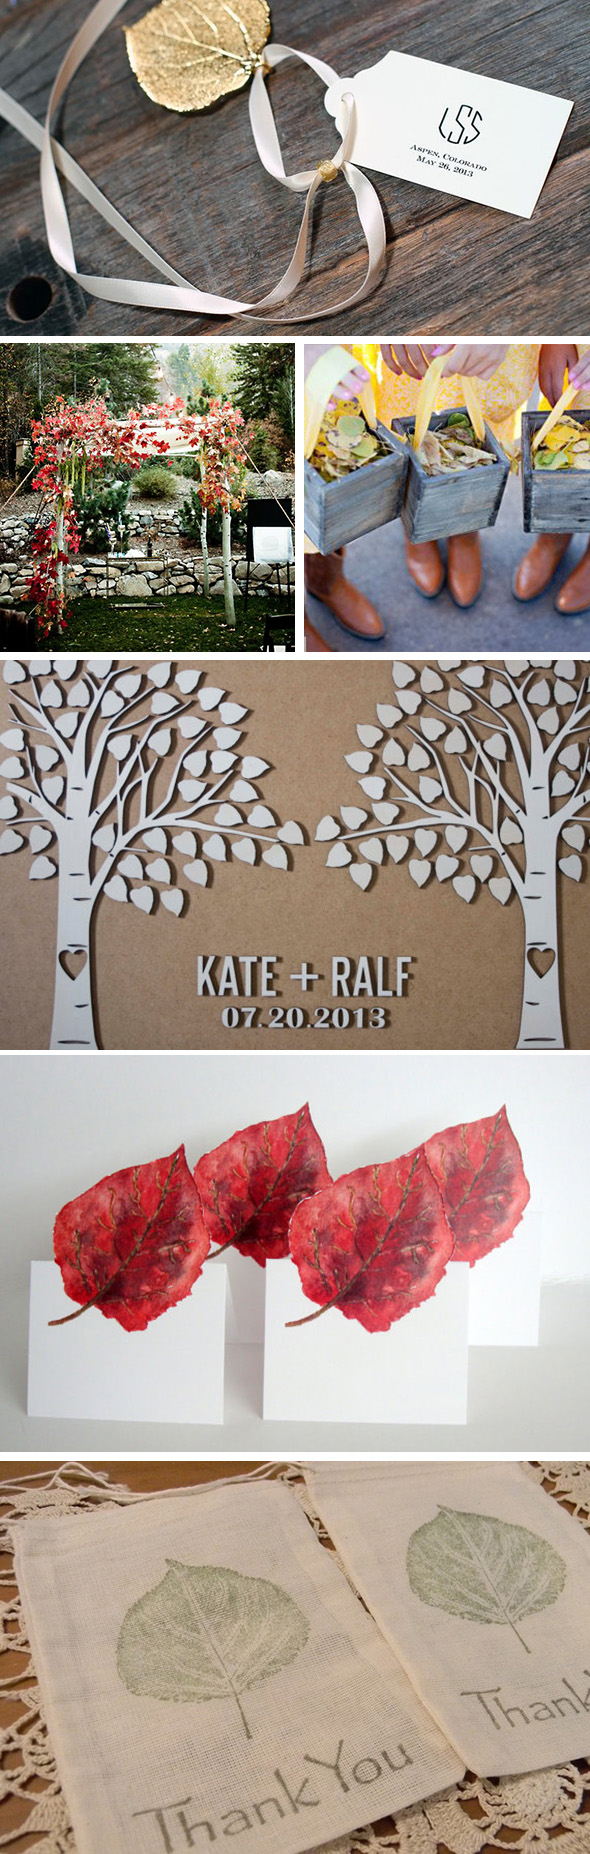 aspen leaf wedding ideas